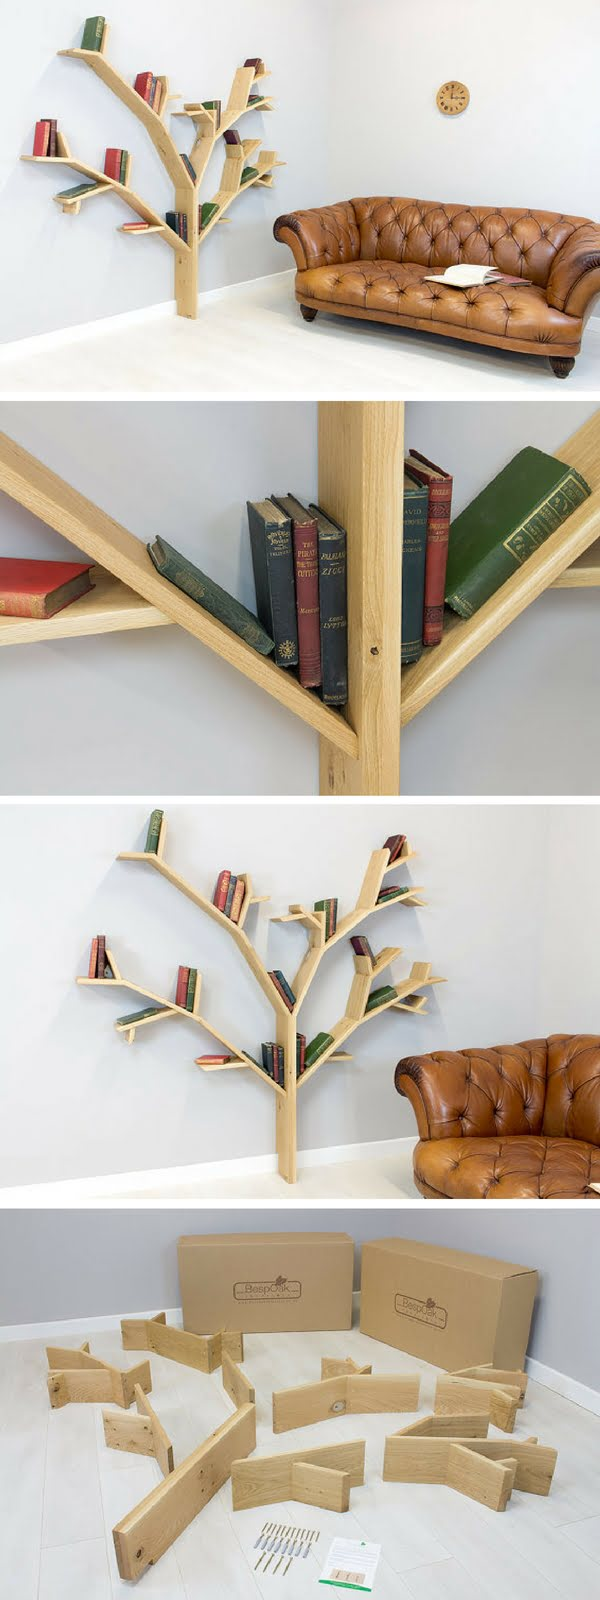 Check out the Hazel Tree Bookshelf